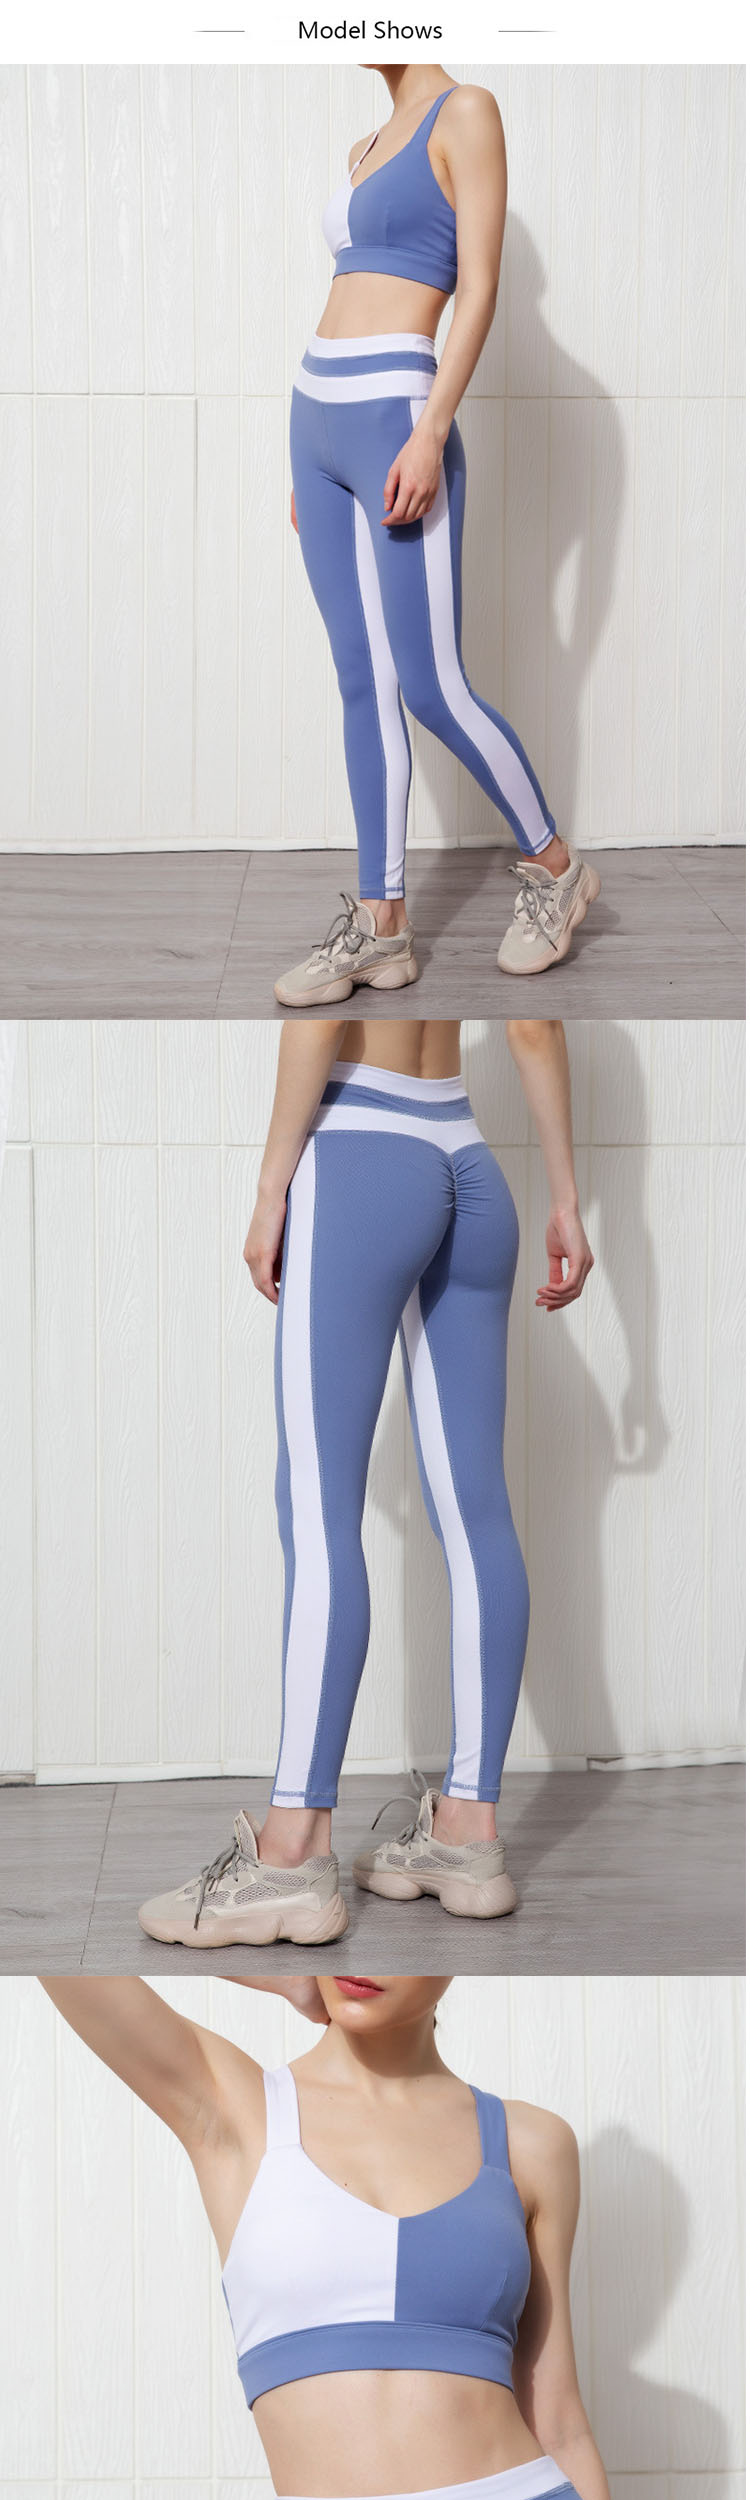 The leggings push up fitness brings a richer visual sense to the style